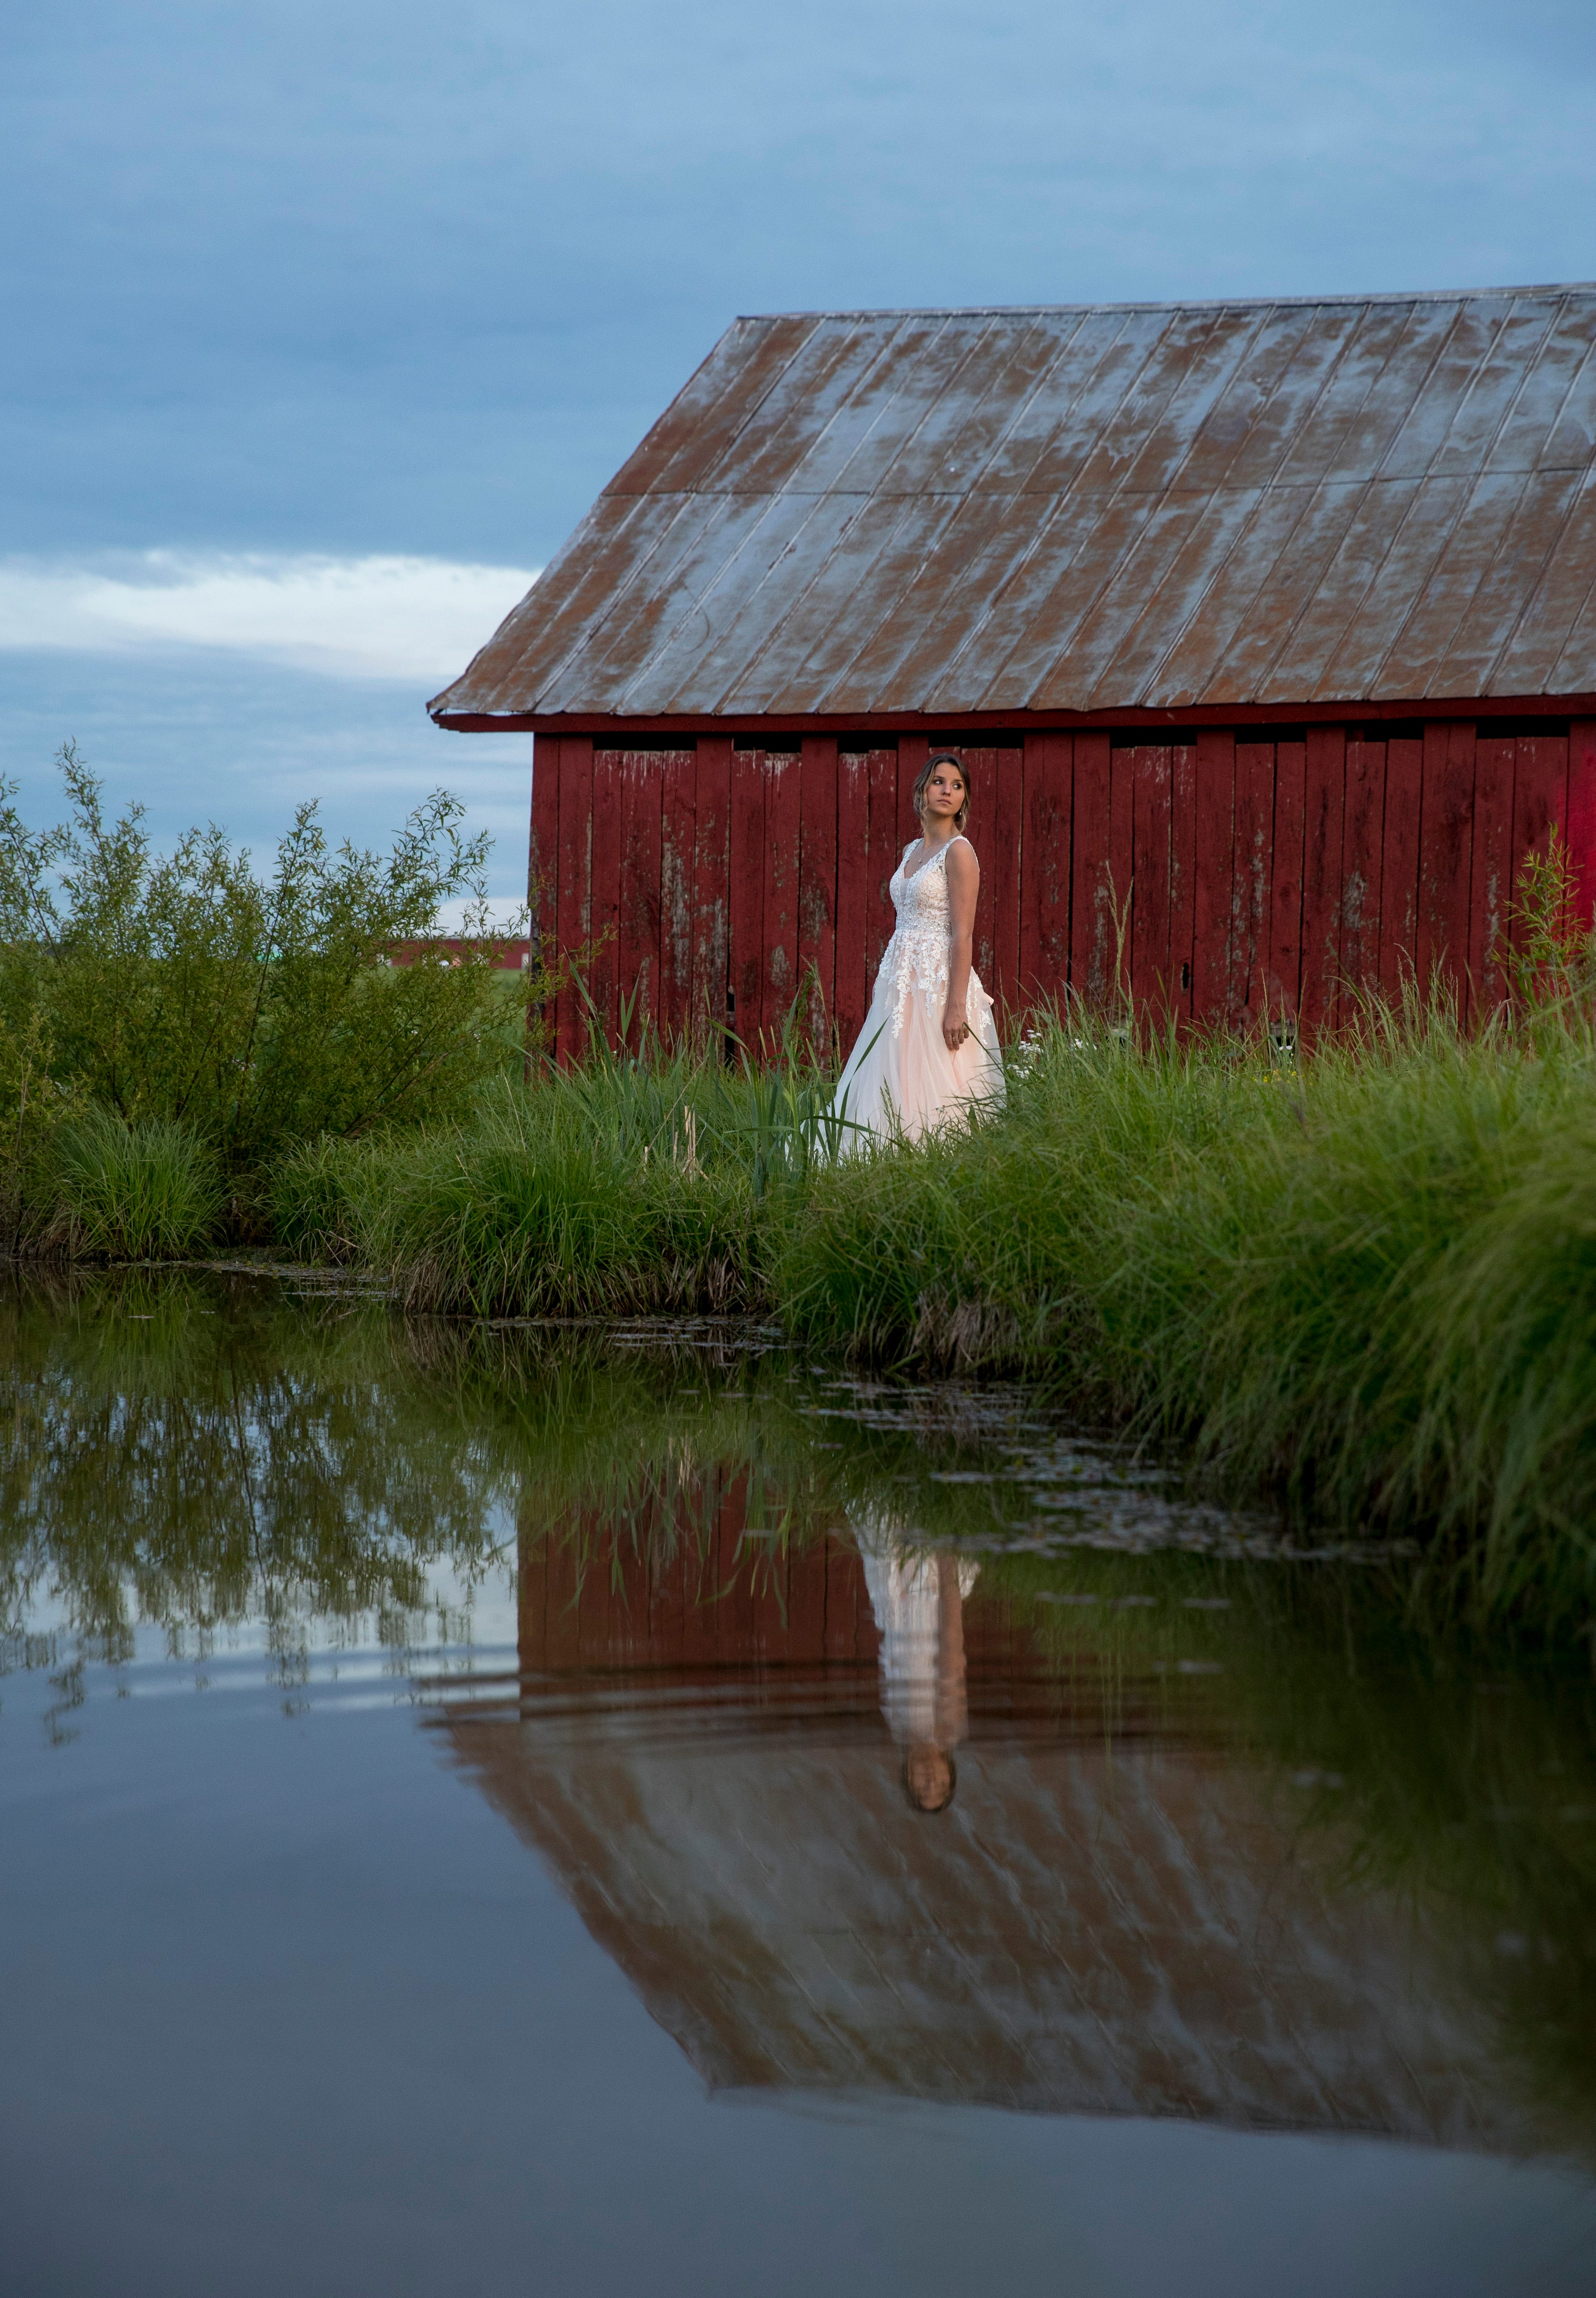 Arie Milam, a senior softball player for Clarksville High and 2019's homecoming queen, stands at the edge of a pond near her family's Cedar Hill, Tenn., property in the dress she would have worn to prom on April 27, 2020.